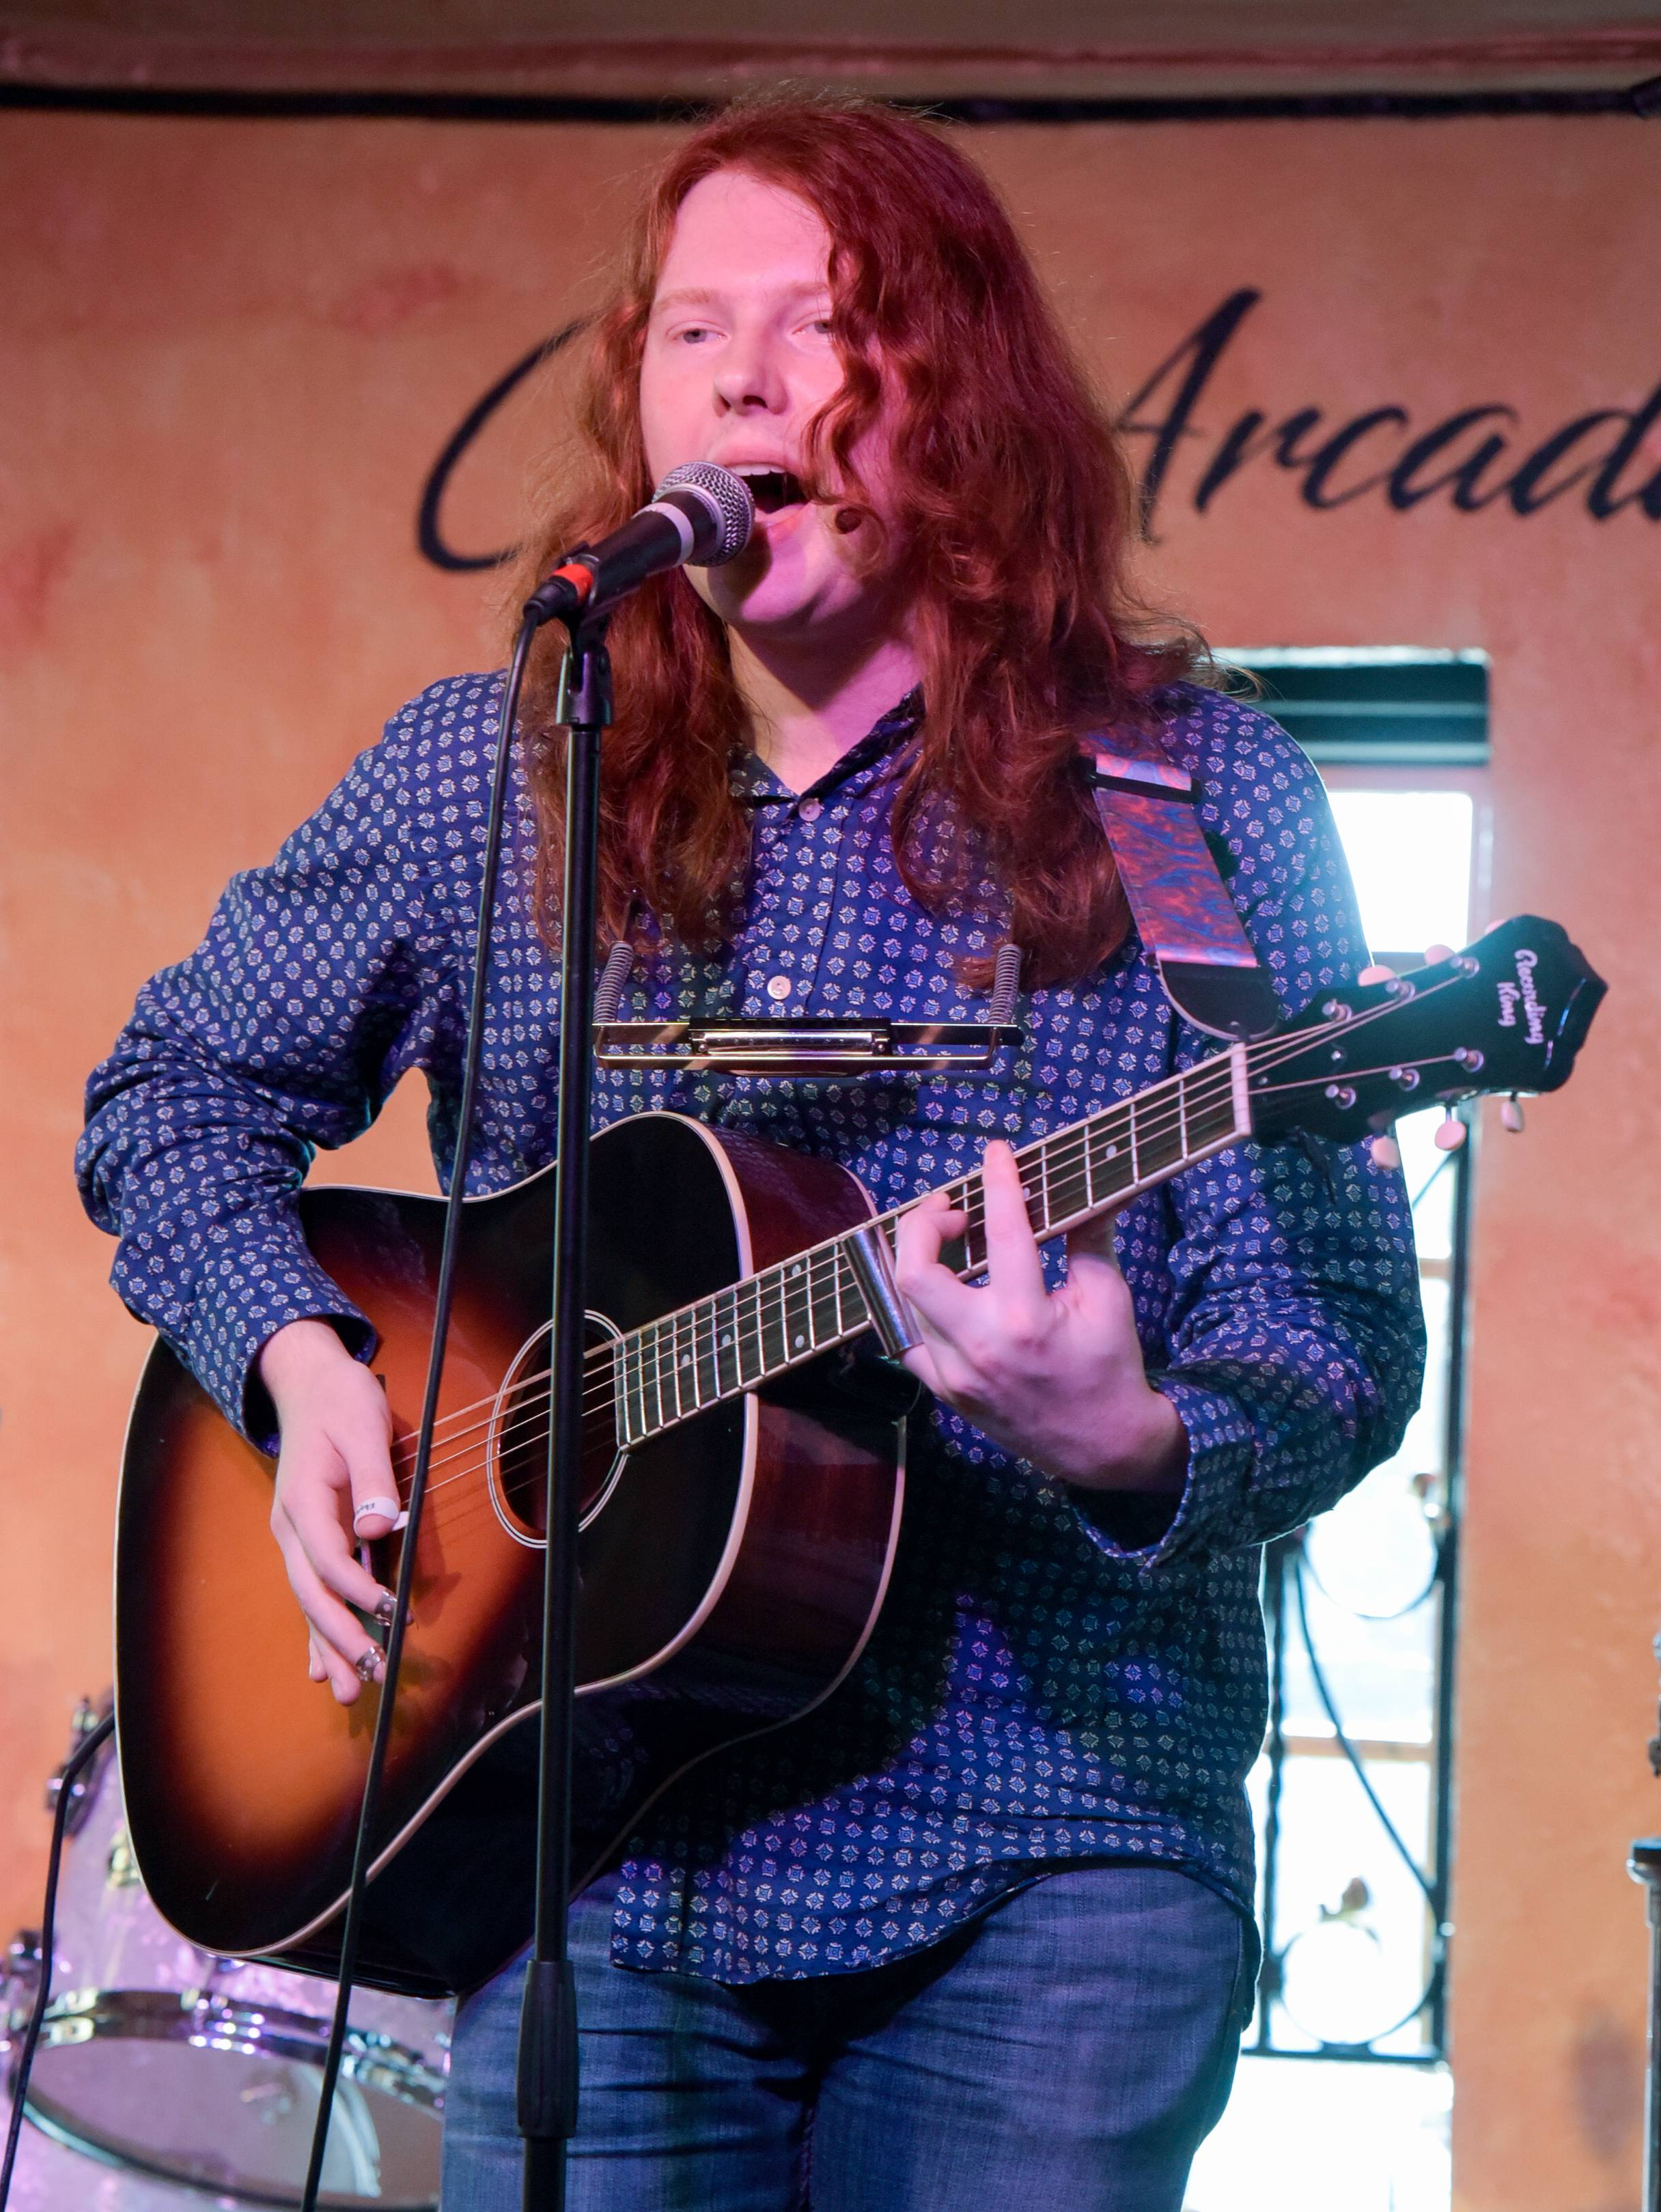 Michael McInerney, 19, of LaGrange takes part in the preliminary auditions Monday for Suburban Chicago's Got Talent at the Arcada Theatre in St. Charles.